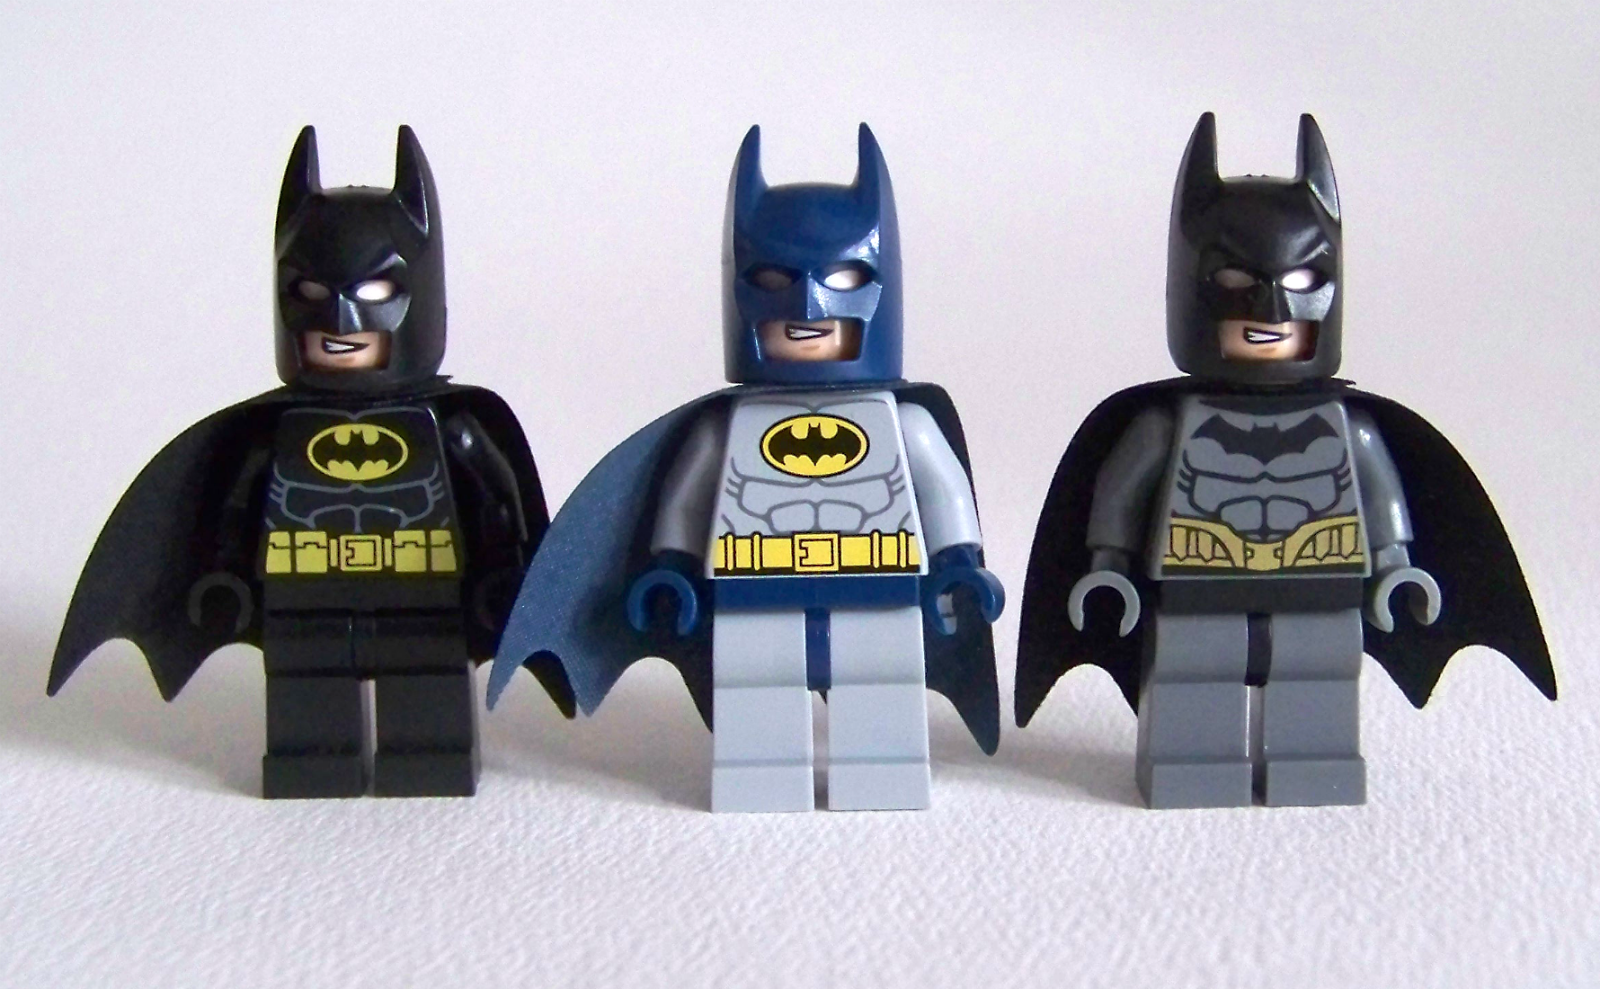 LEGO Batman comparison variants